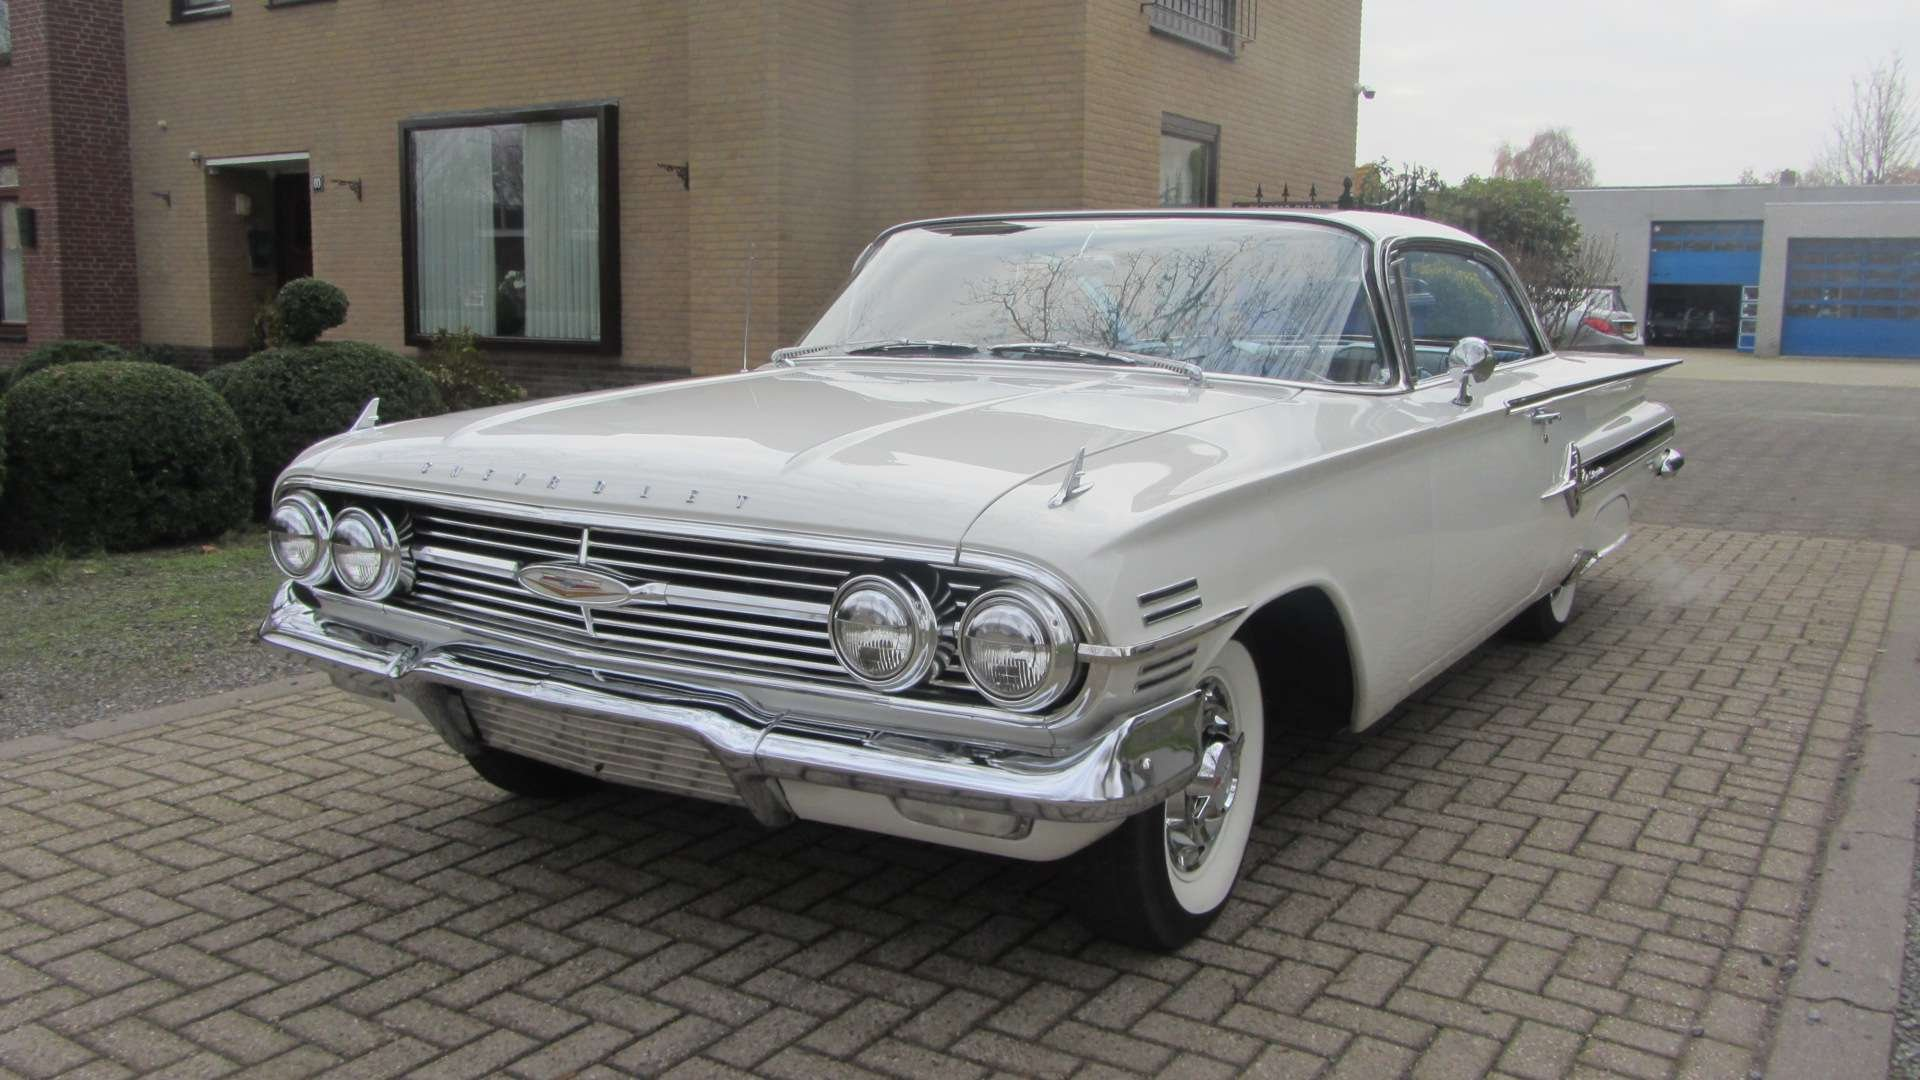 Chevrolet impala Coupe 1960 New Car & 50 USA Classics For Sale (picture 3 of 6)